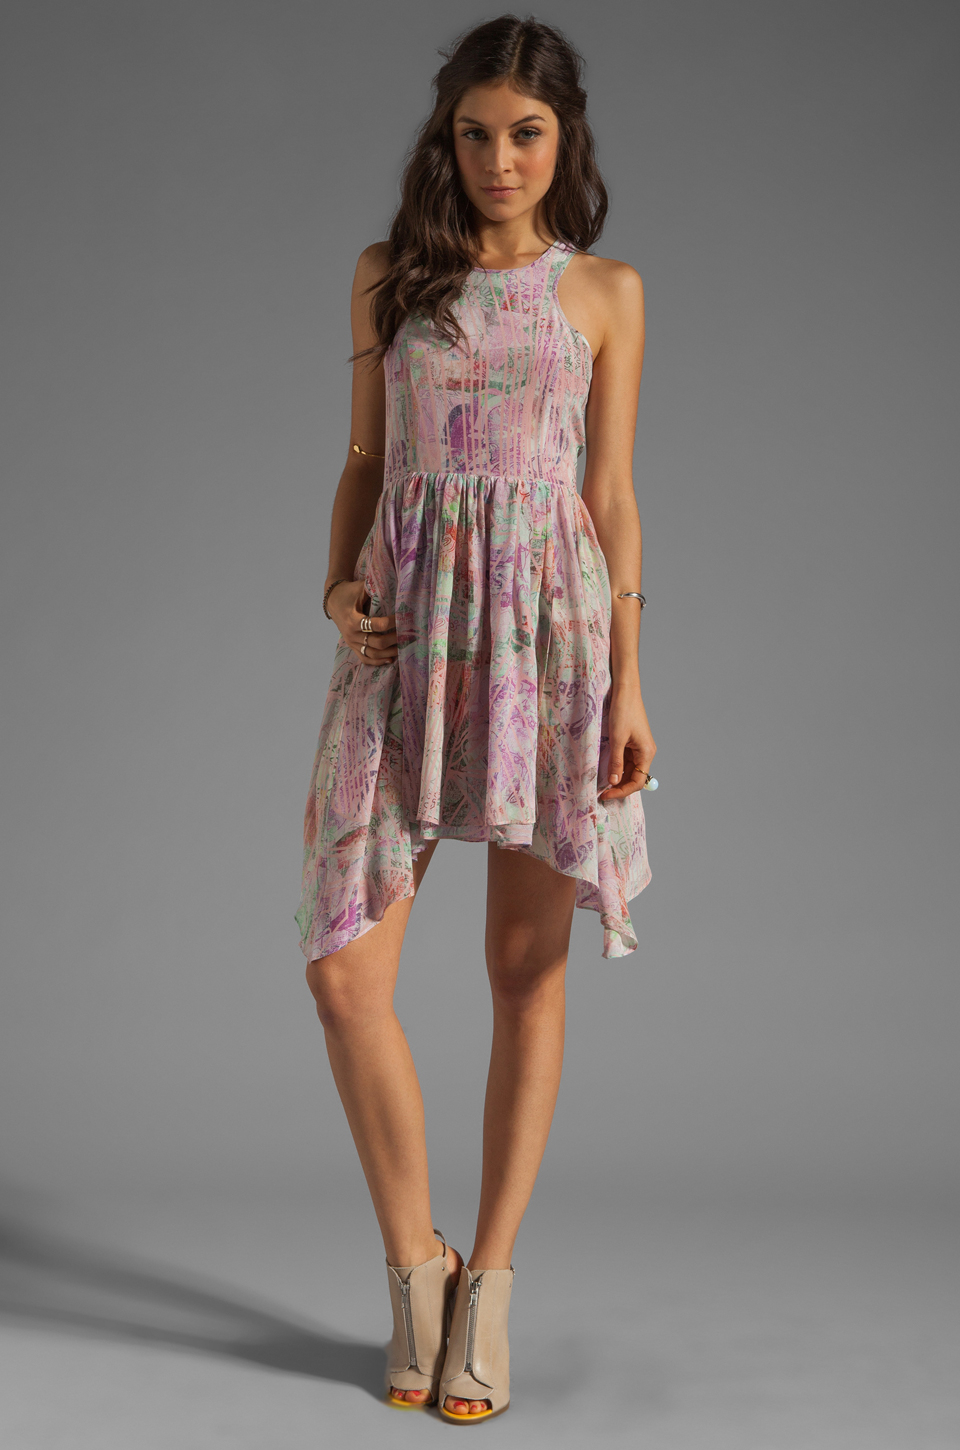 Lyst Talulah Moon Stars Dress In Pink Floral In Pink